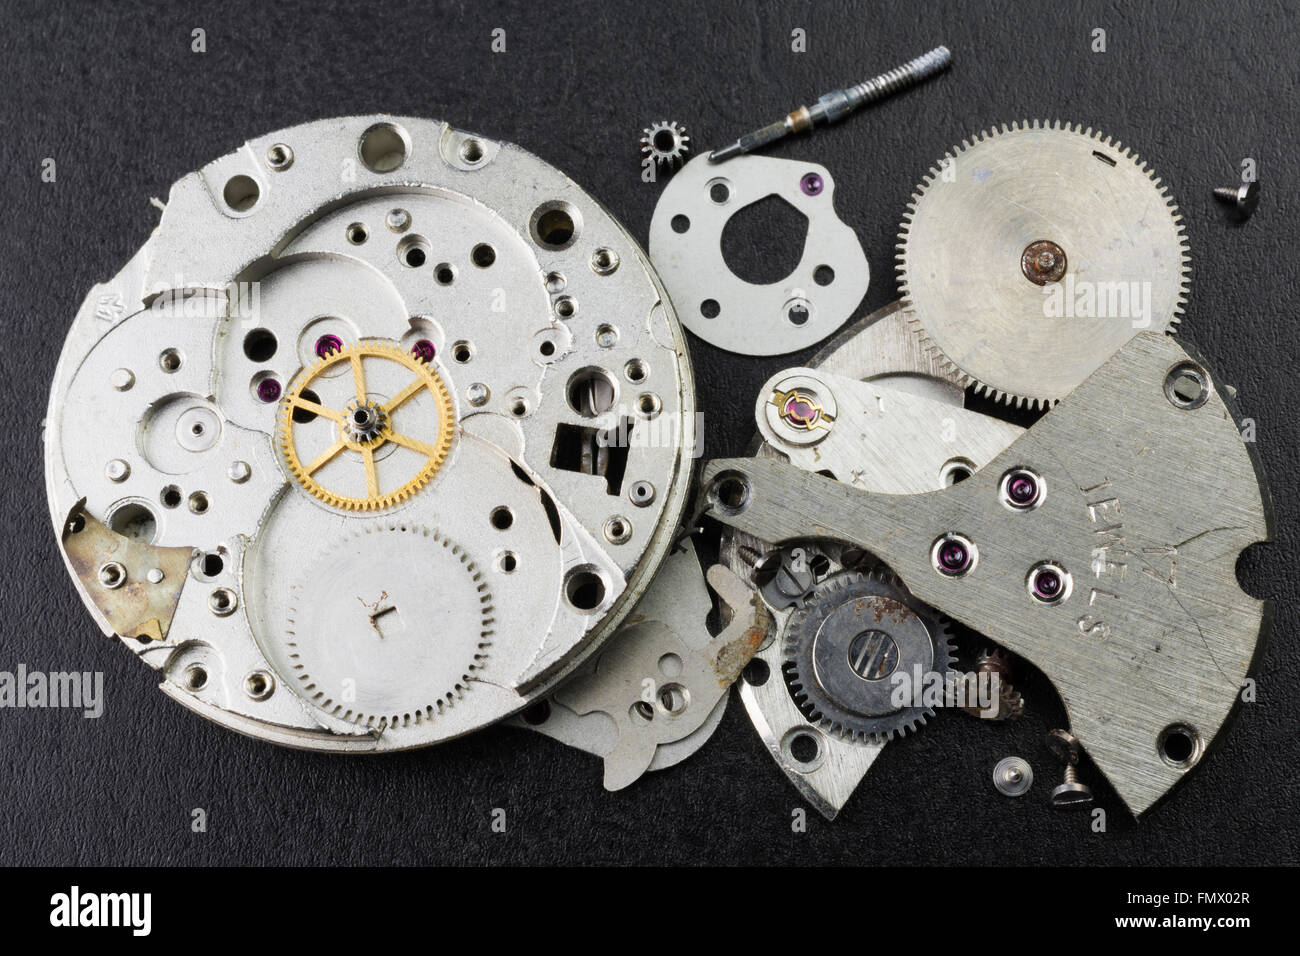 Broken Wristwatches - Stock Image